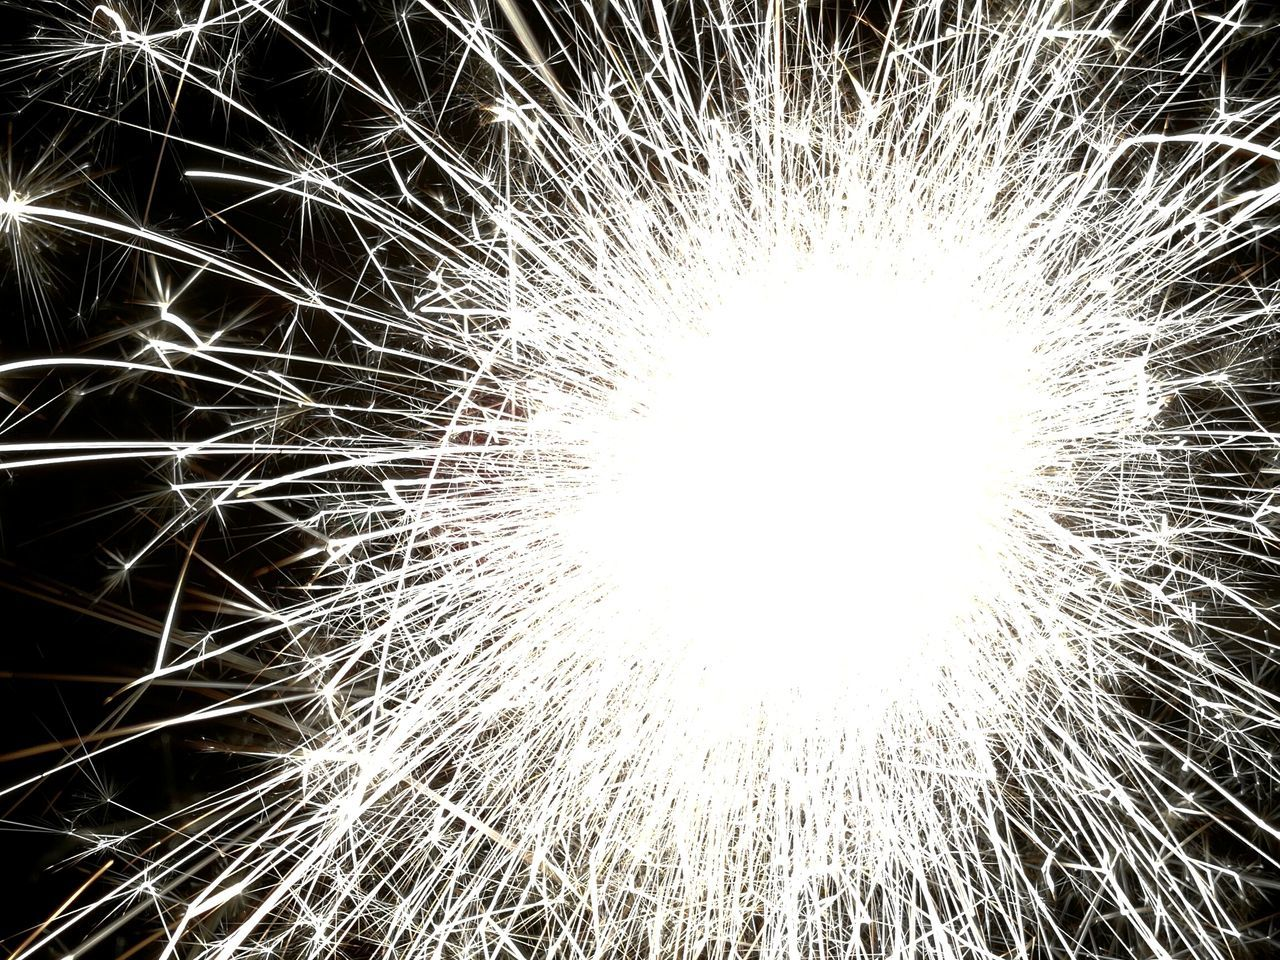 sparks, firework display, night, exploding, firework - man made object, celebration, glowing, arts culture and entertainment, backgrounds, long exposure, event, blurred motion, illuminated, full frame, low angle view, no people, firework, outdoors, close-up